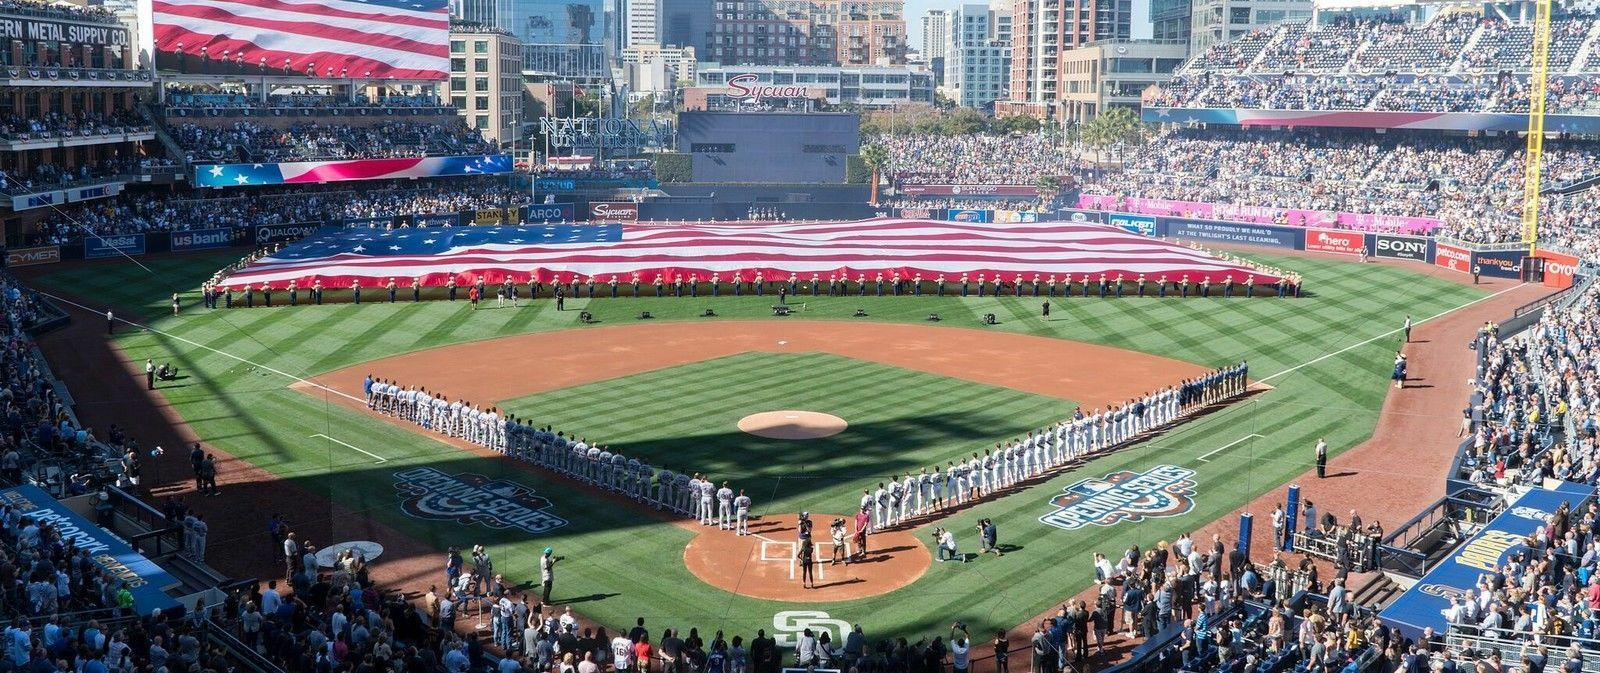 Arizona Diamondbacks at San Diego Padres